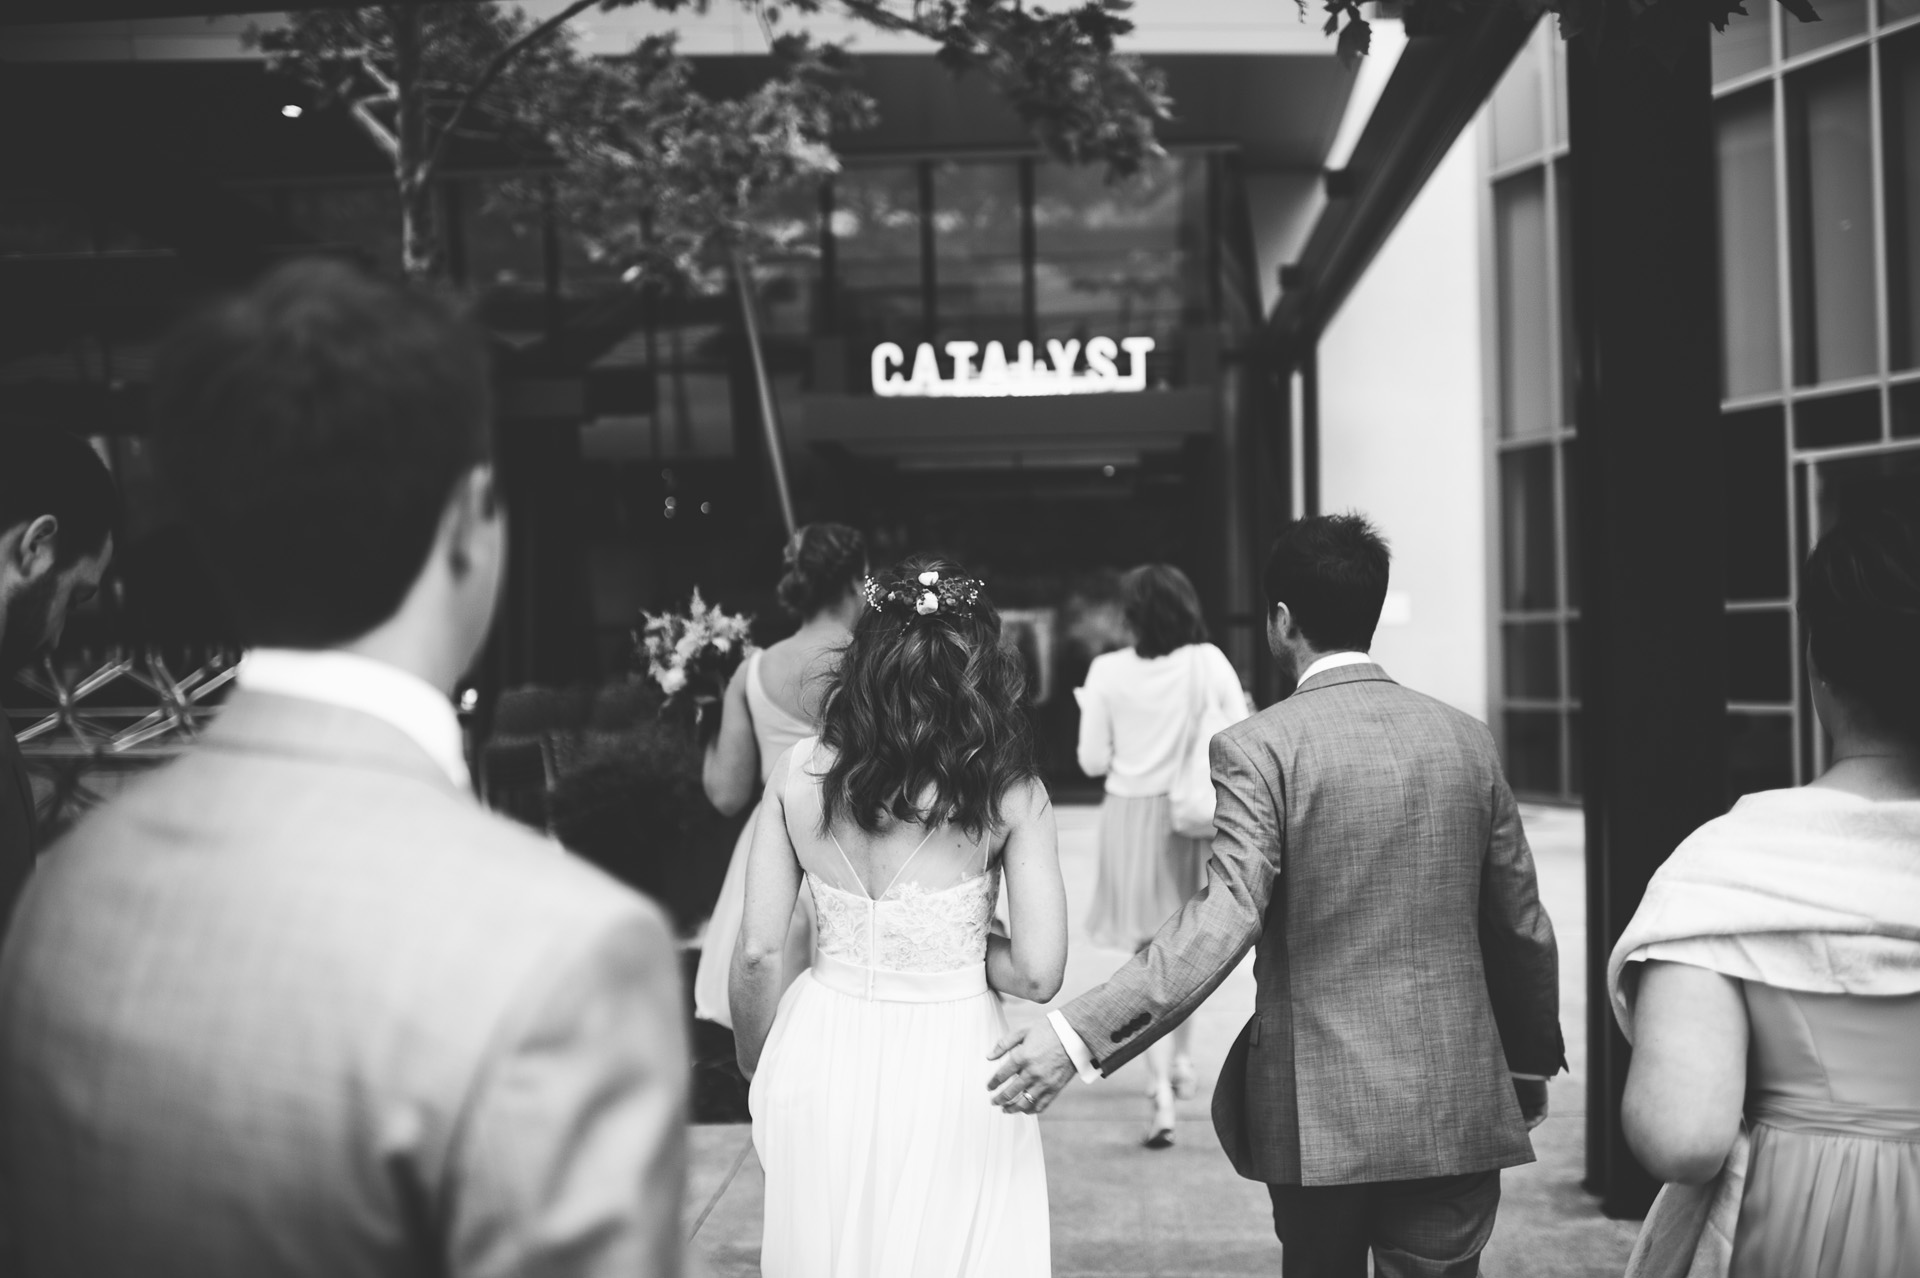 Catalyst Restaurant Wedding